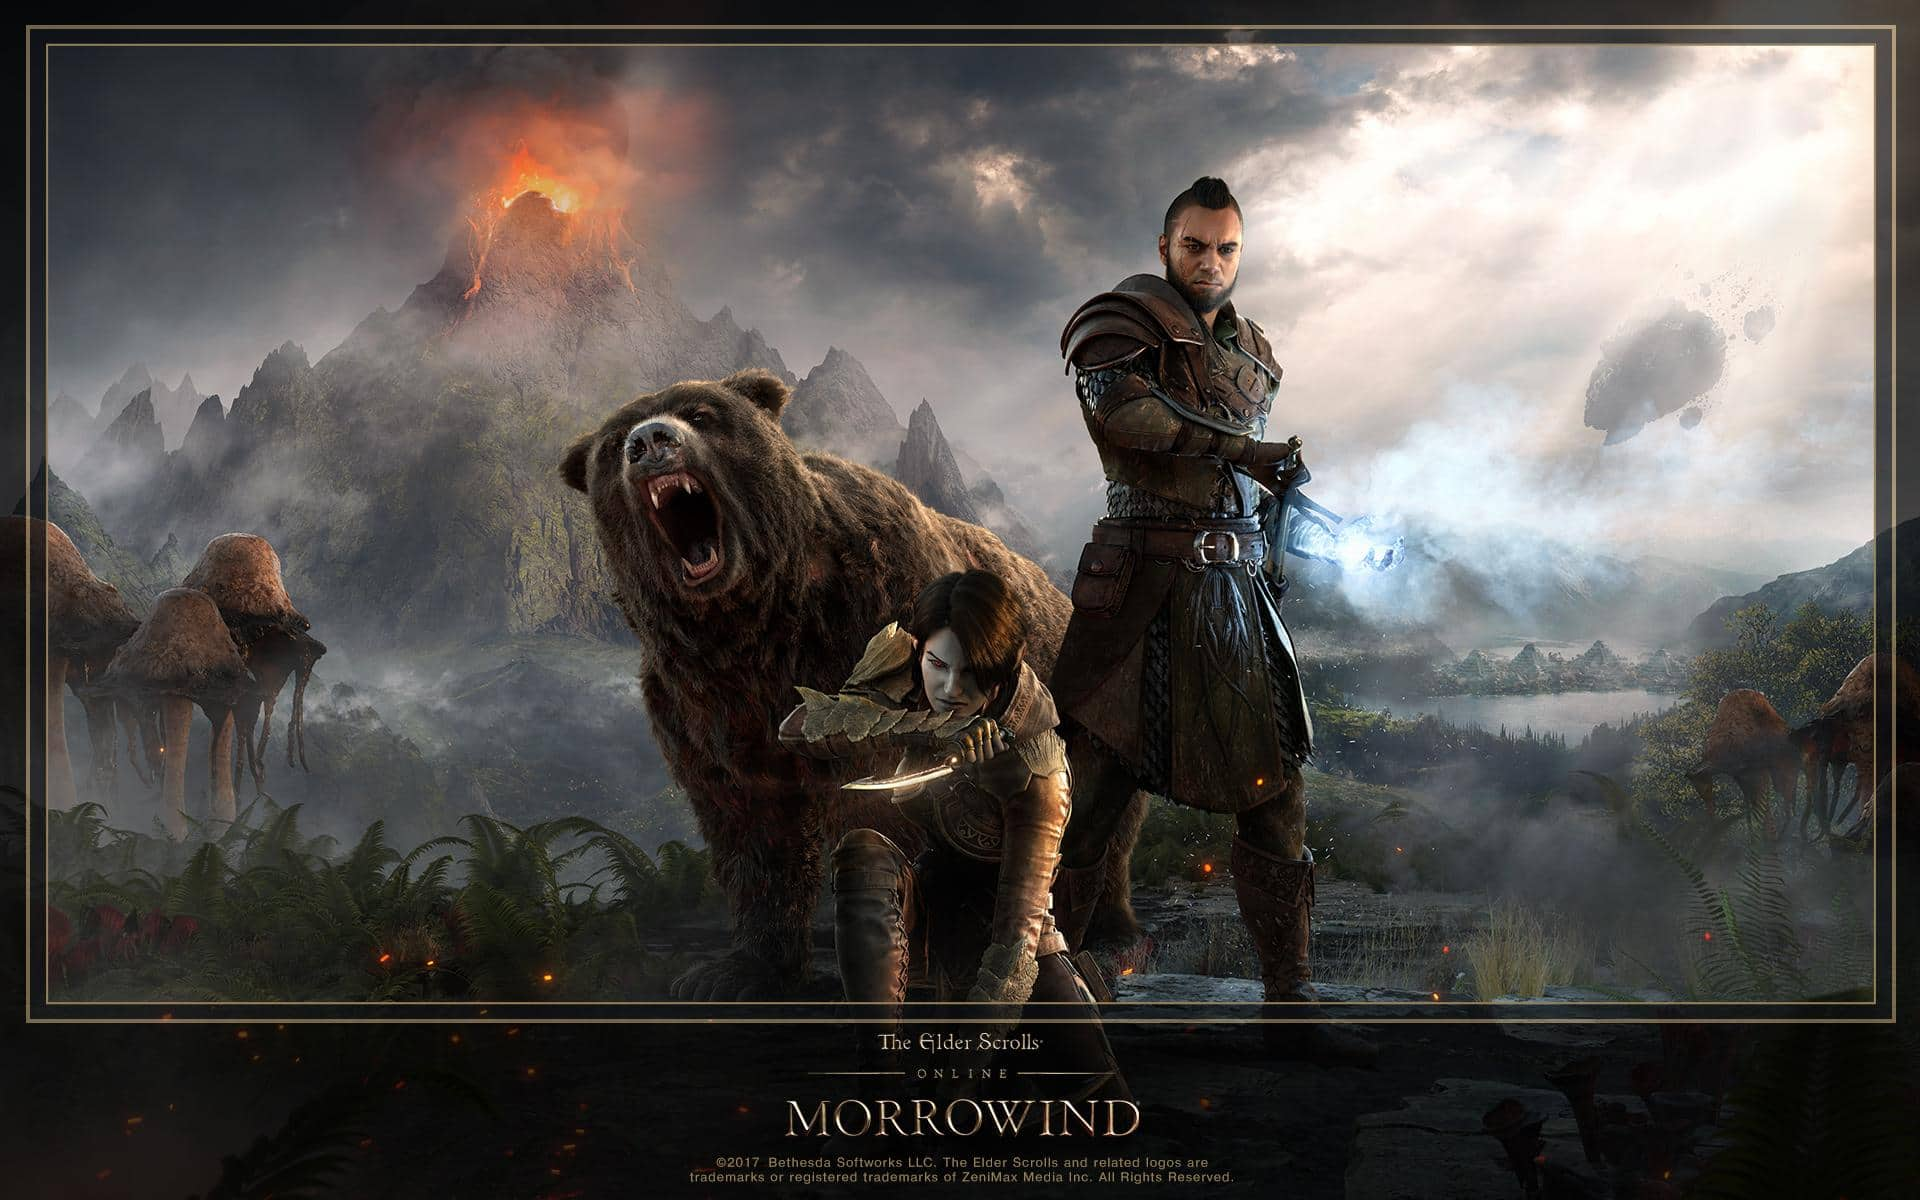 Download The New Eso Morrowind Hero Art Wallpaper The Elder